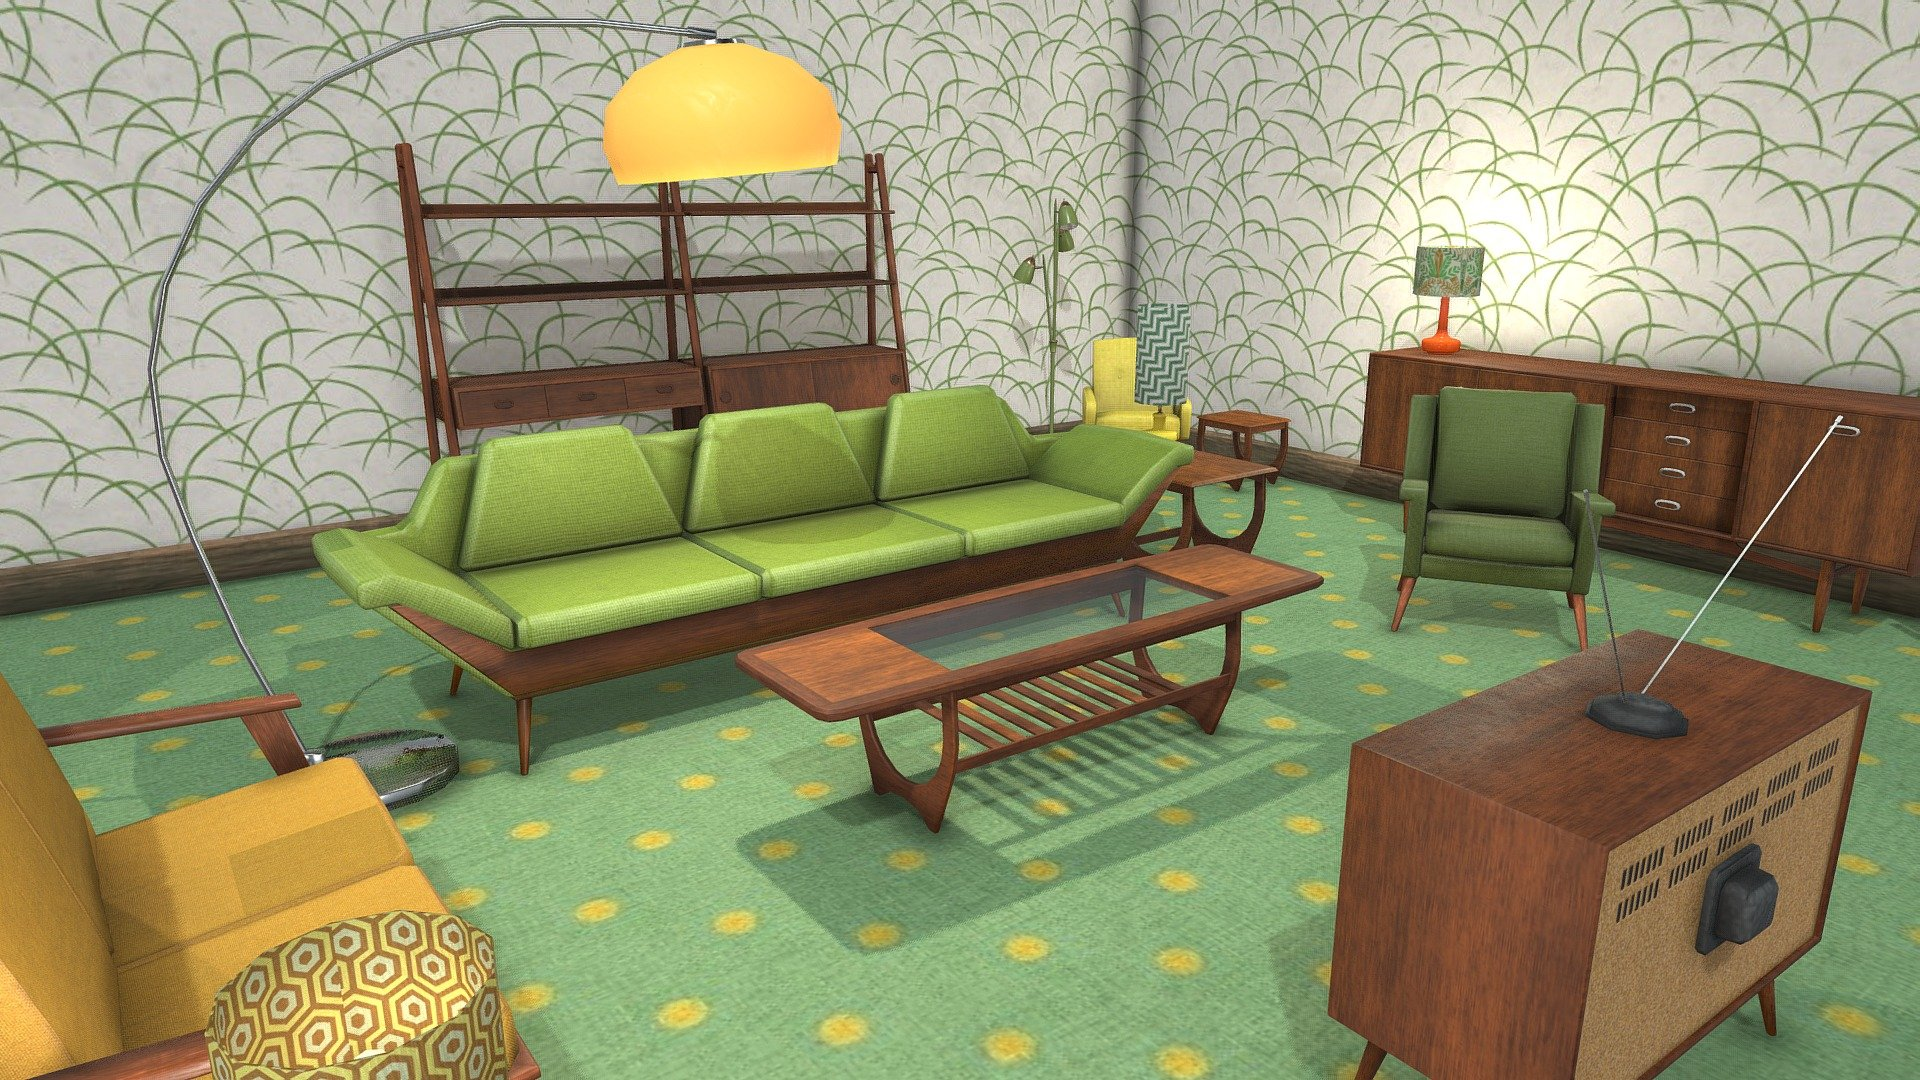 Retro Living Room Low Poly Furniture Pack Buy